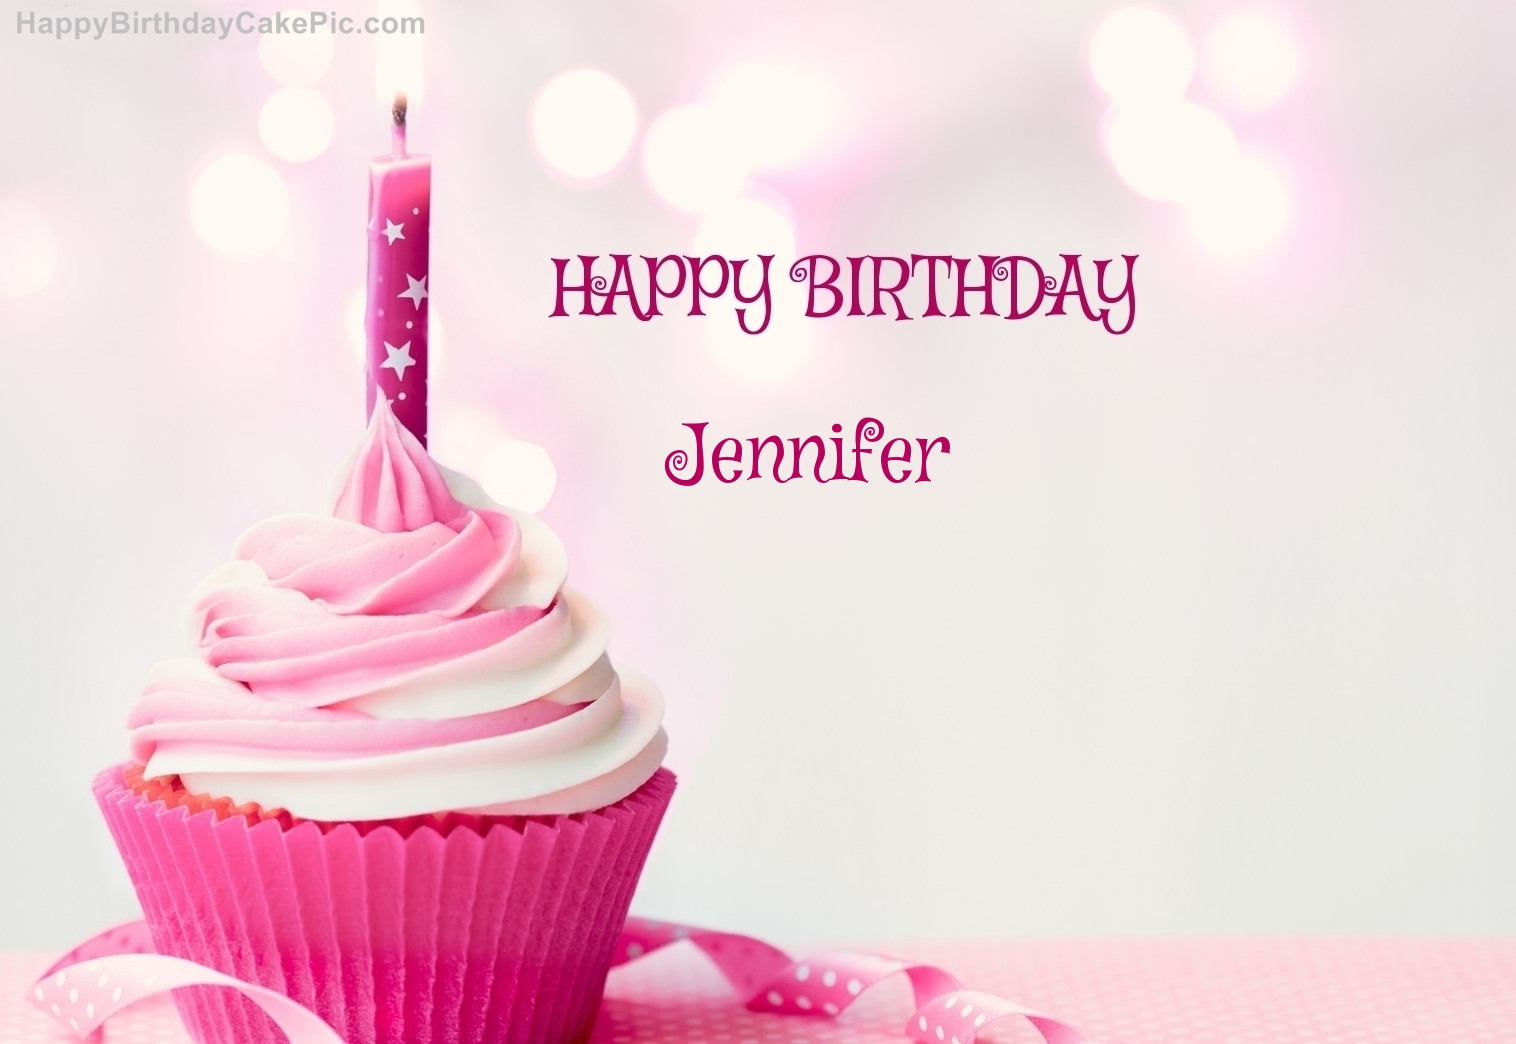 happy birthday jennifer photo ; new-happy-birthday-cupcake-candle-pink-cake-for-jennifer-of-happy-birthday-jen-images